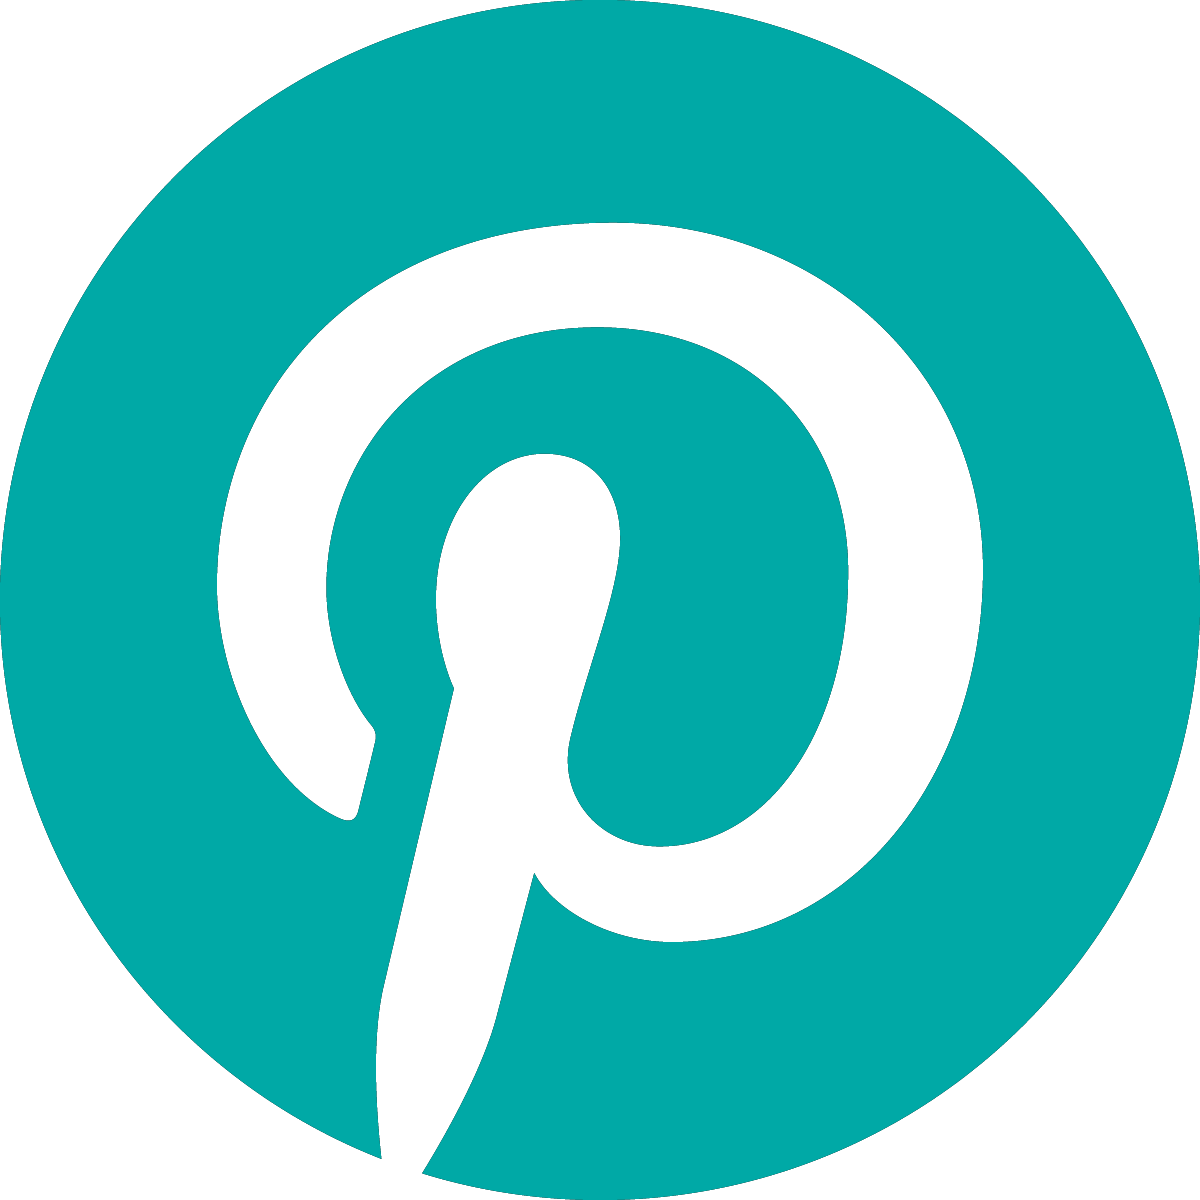 icon-Pinterest.png